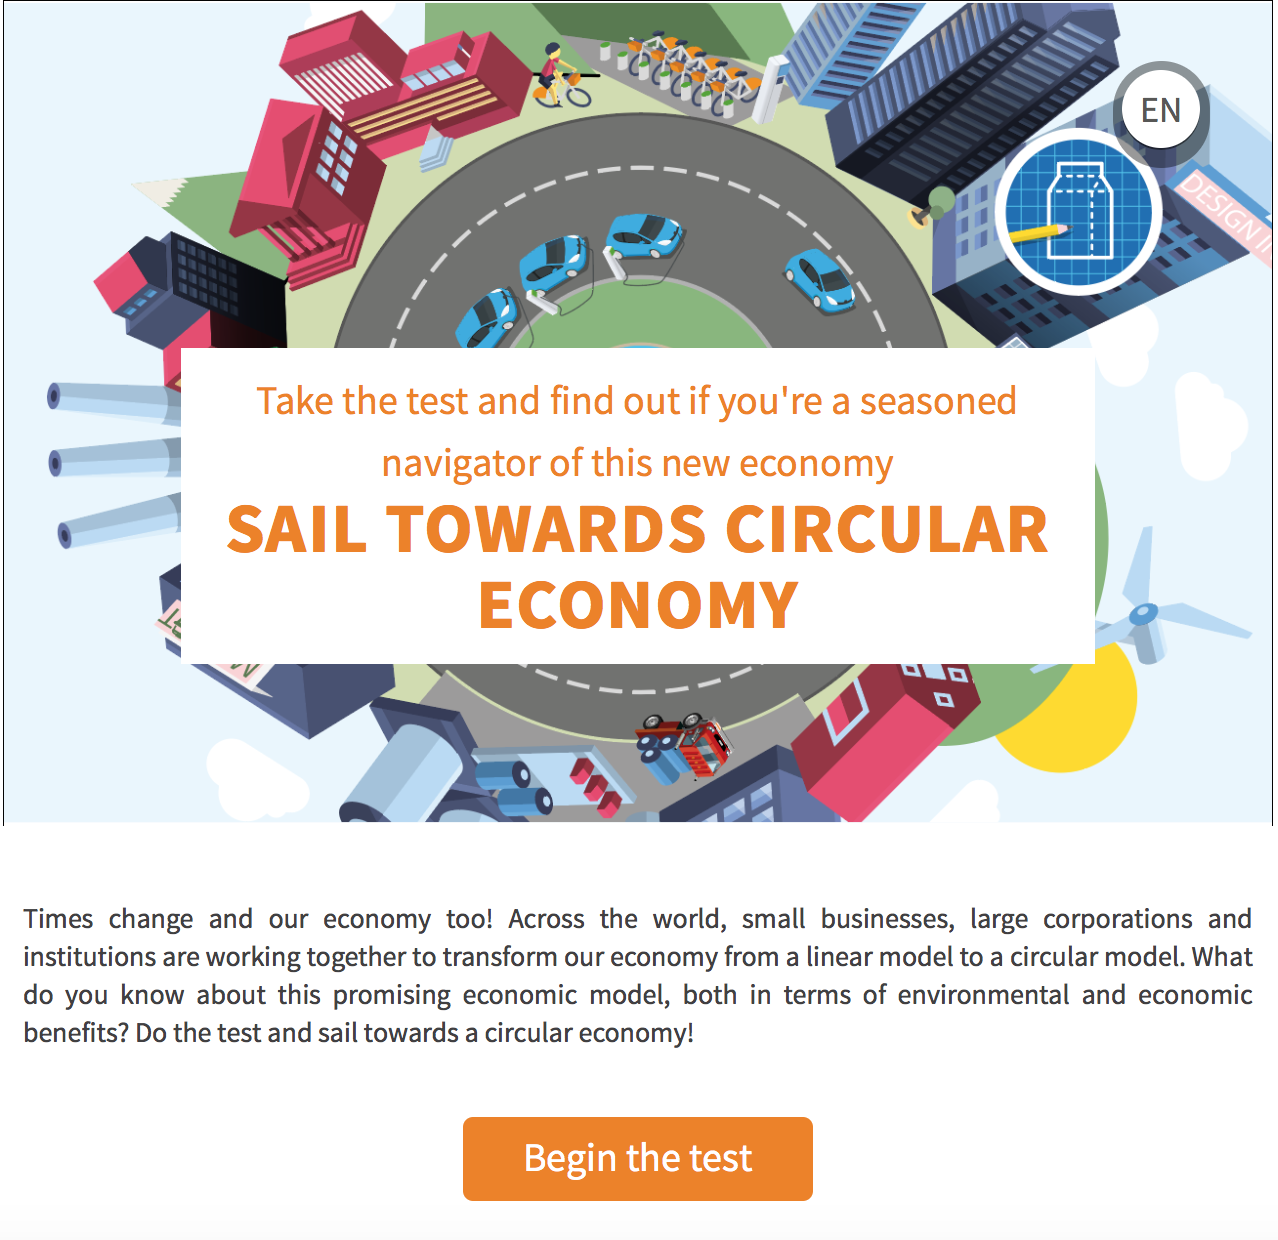 Test your knowledge on circular economy